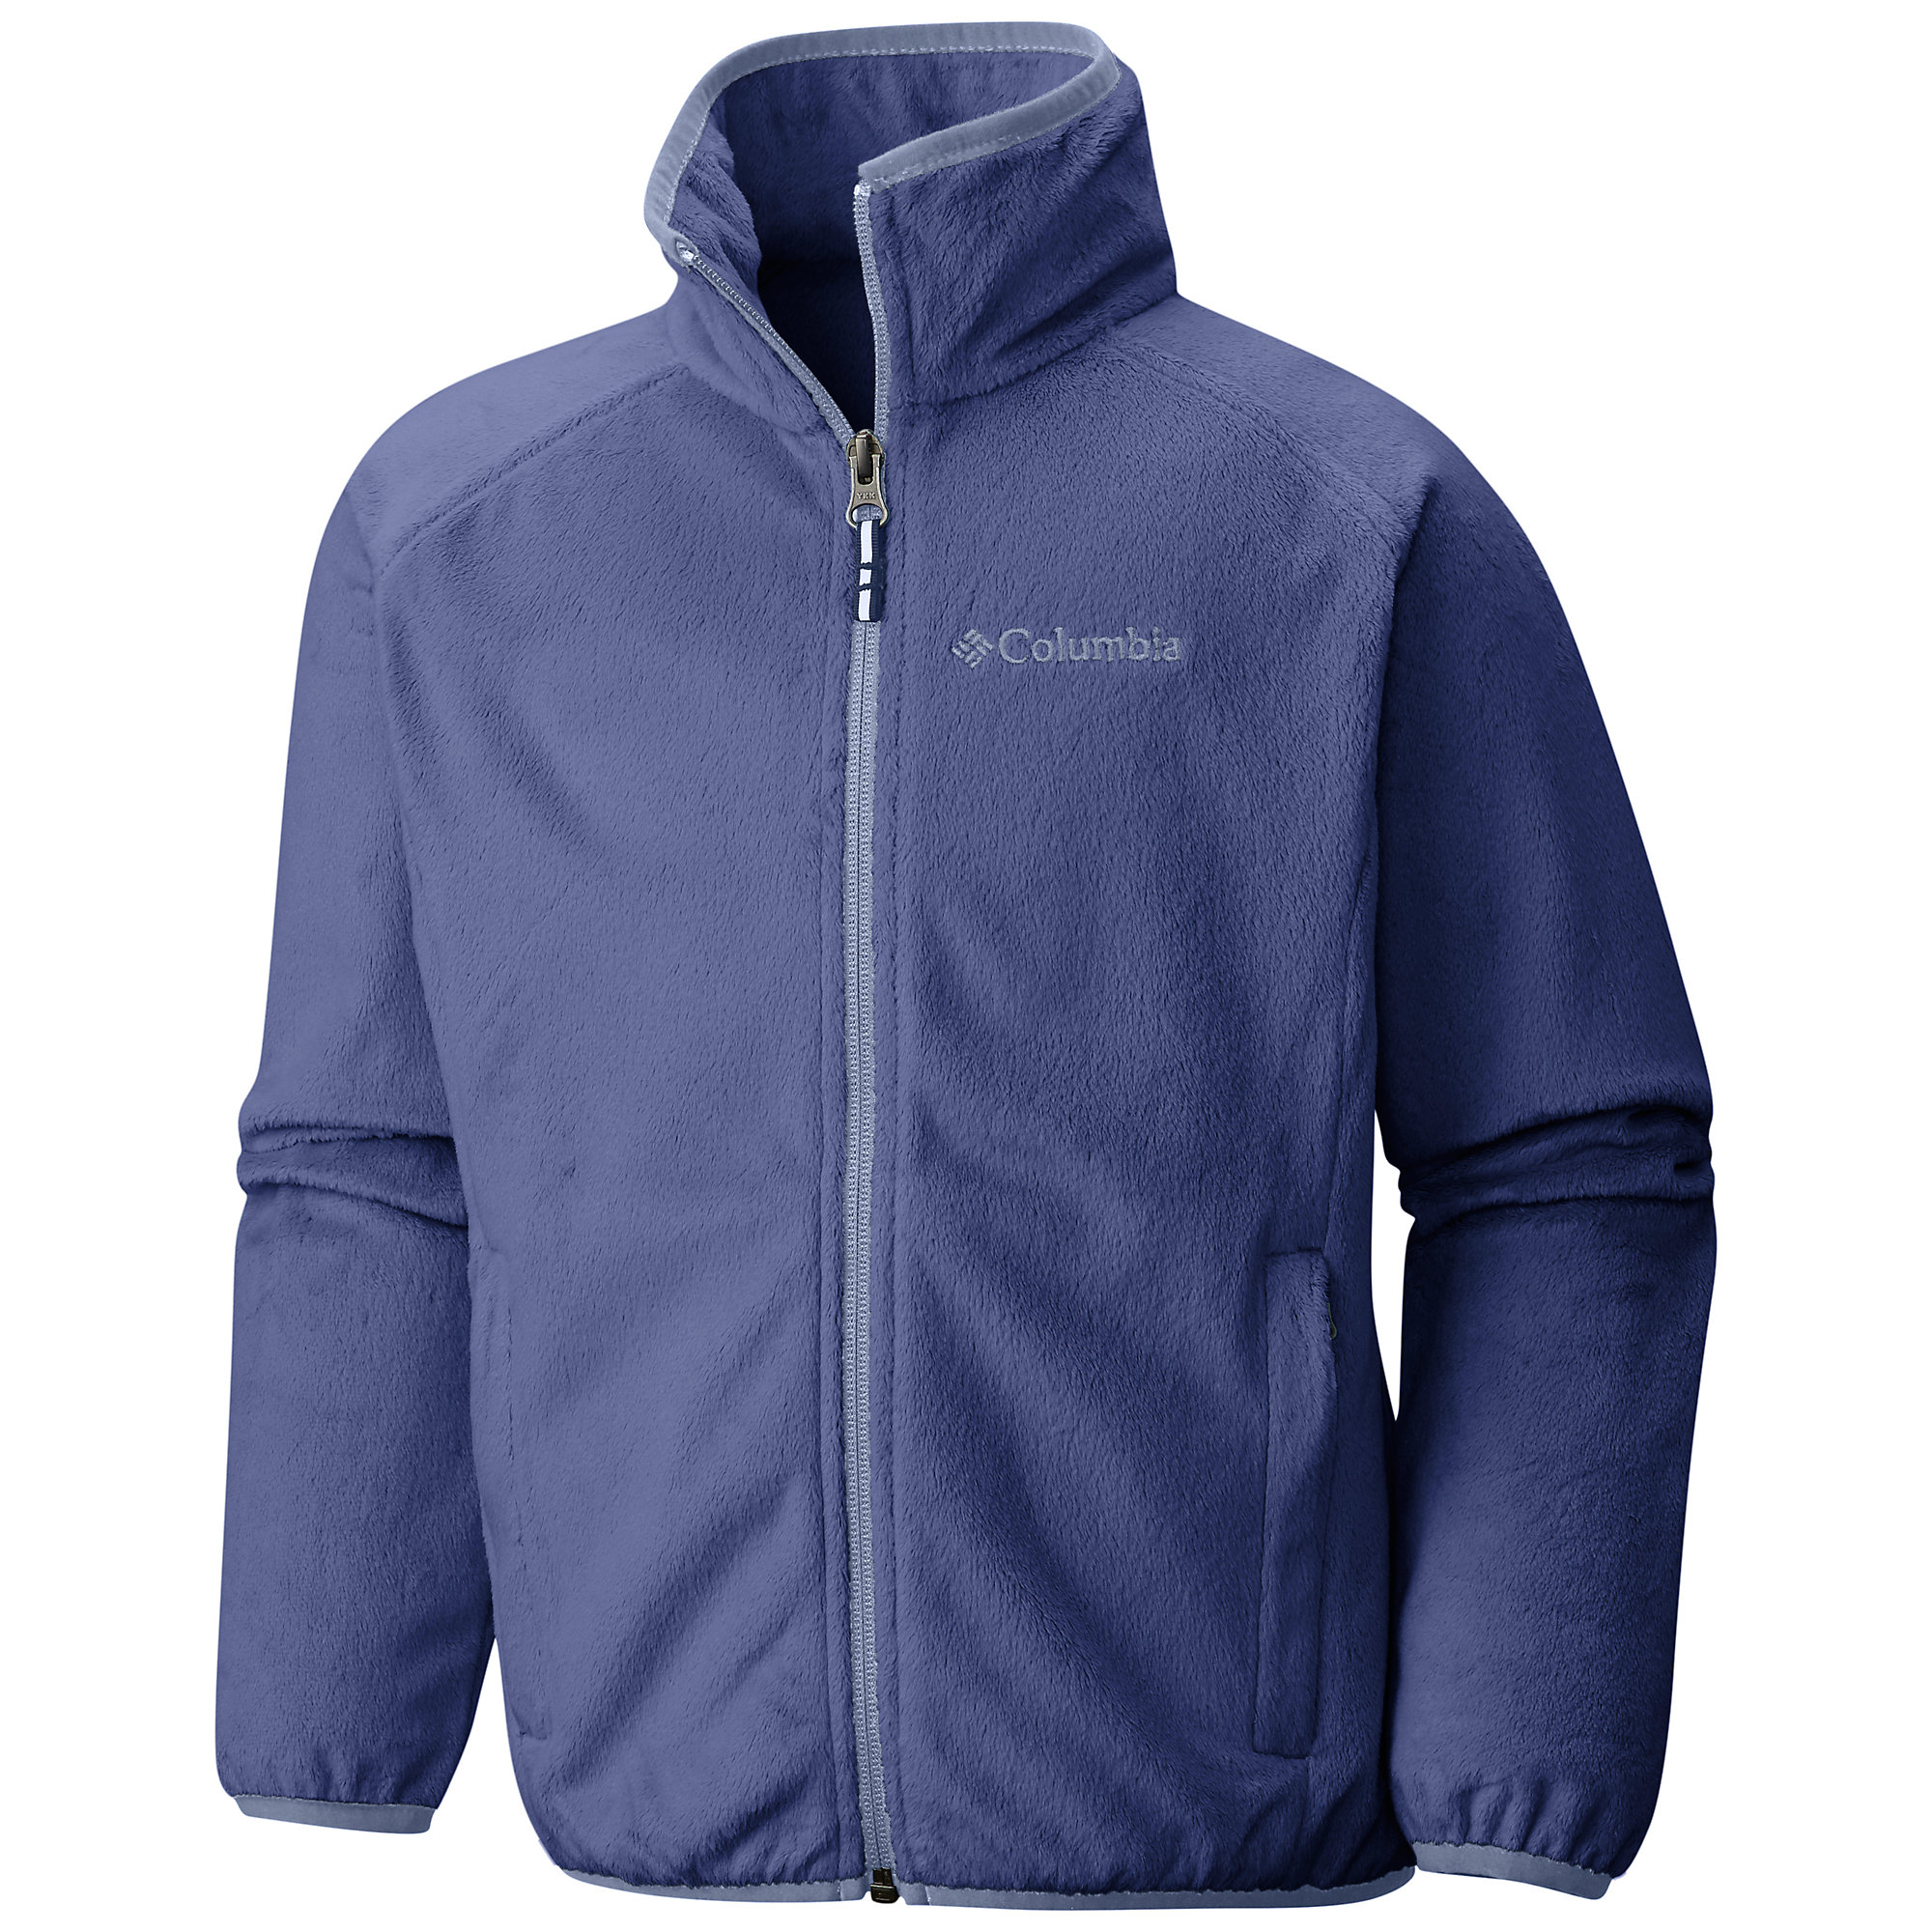 Columbia Pearl Plush Full Zip Jacket